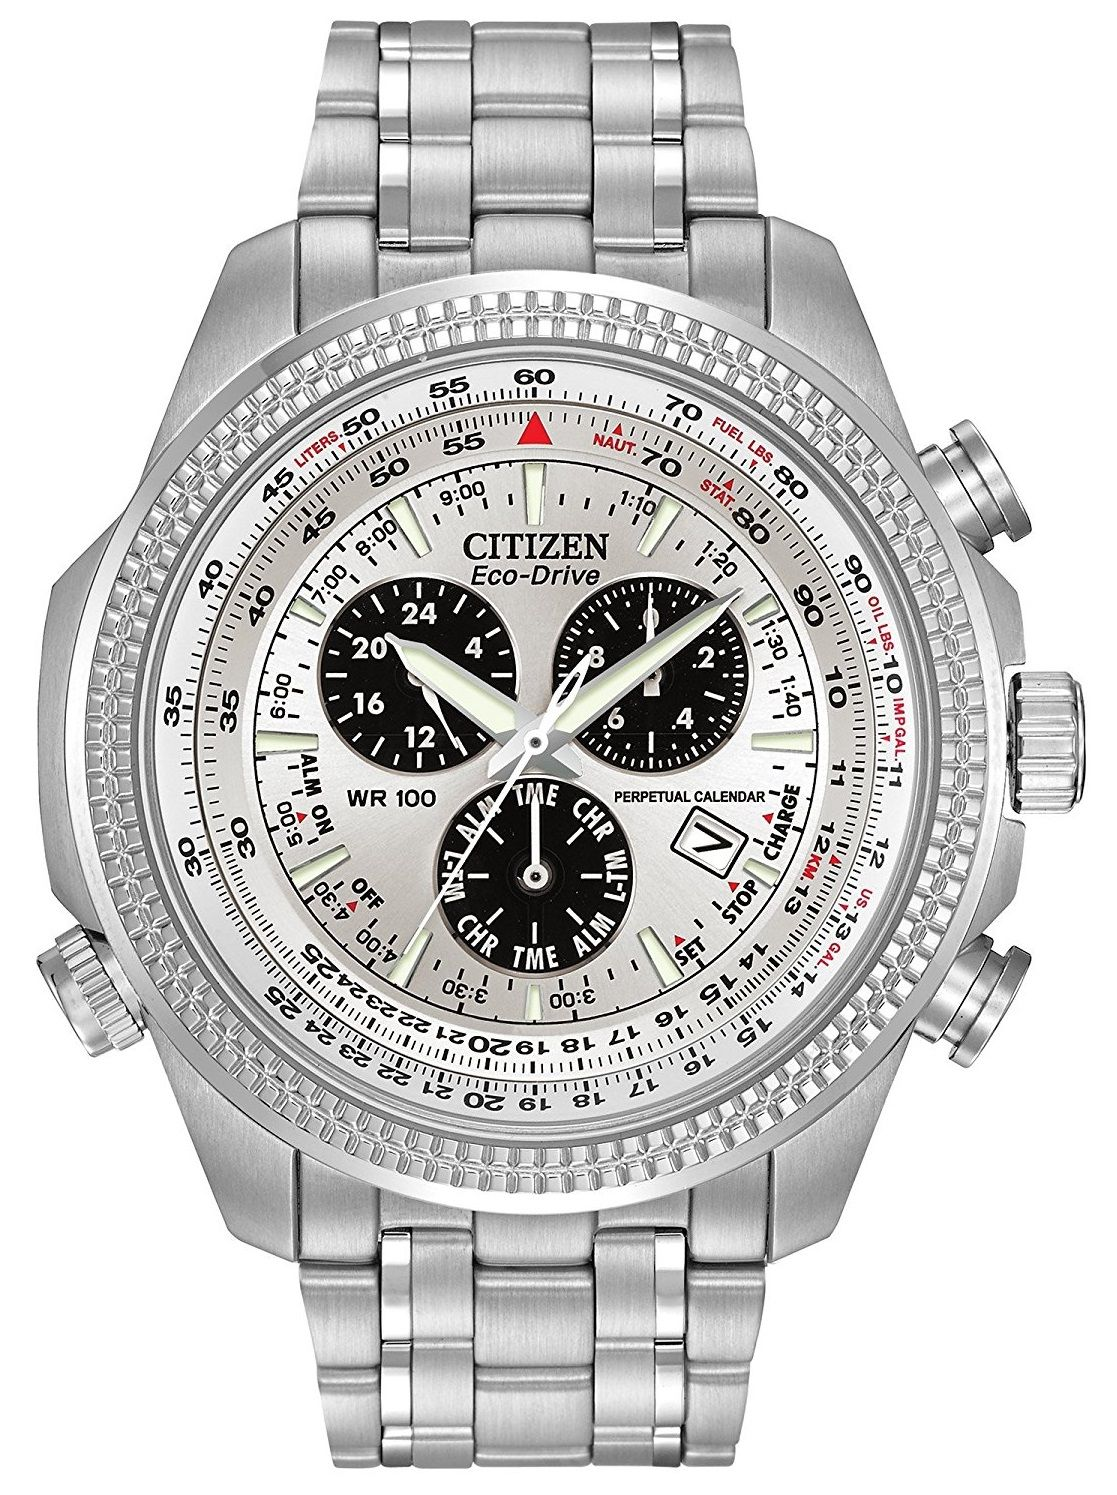 6f96d18fe57 Citizen Men s Eco-Drive Chronograph Watch with Perpetual Calendar and Date